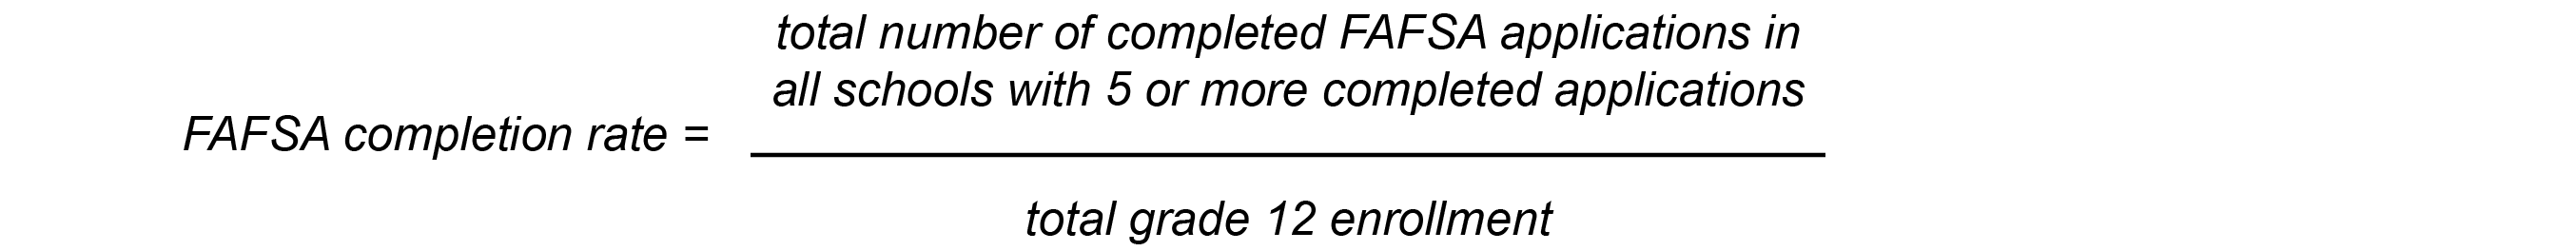 FAFSA completion rate = Total number of completed FAFSA applications in all schools with 5 or more completed applications / total grade 12 enrollment